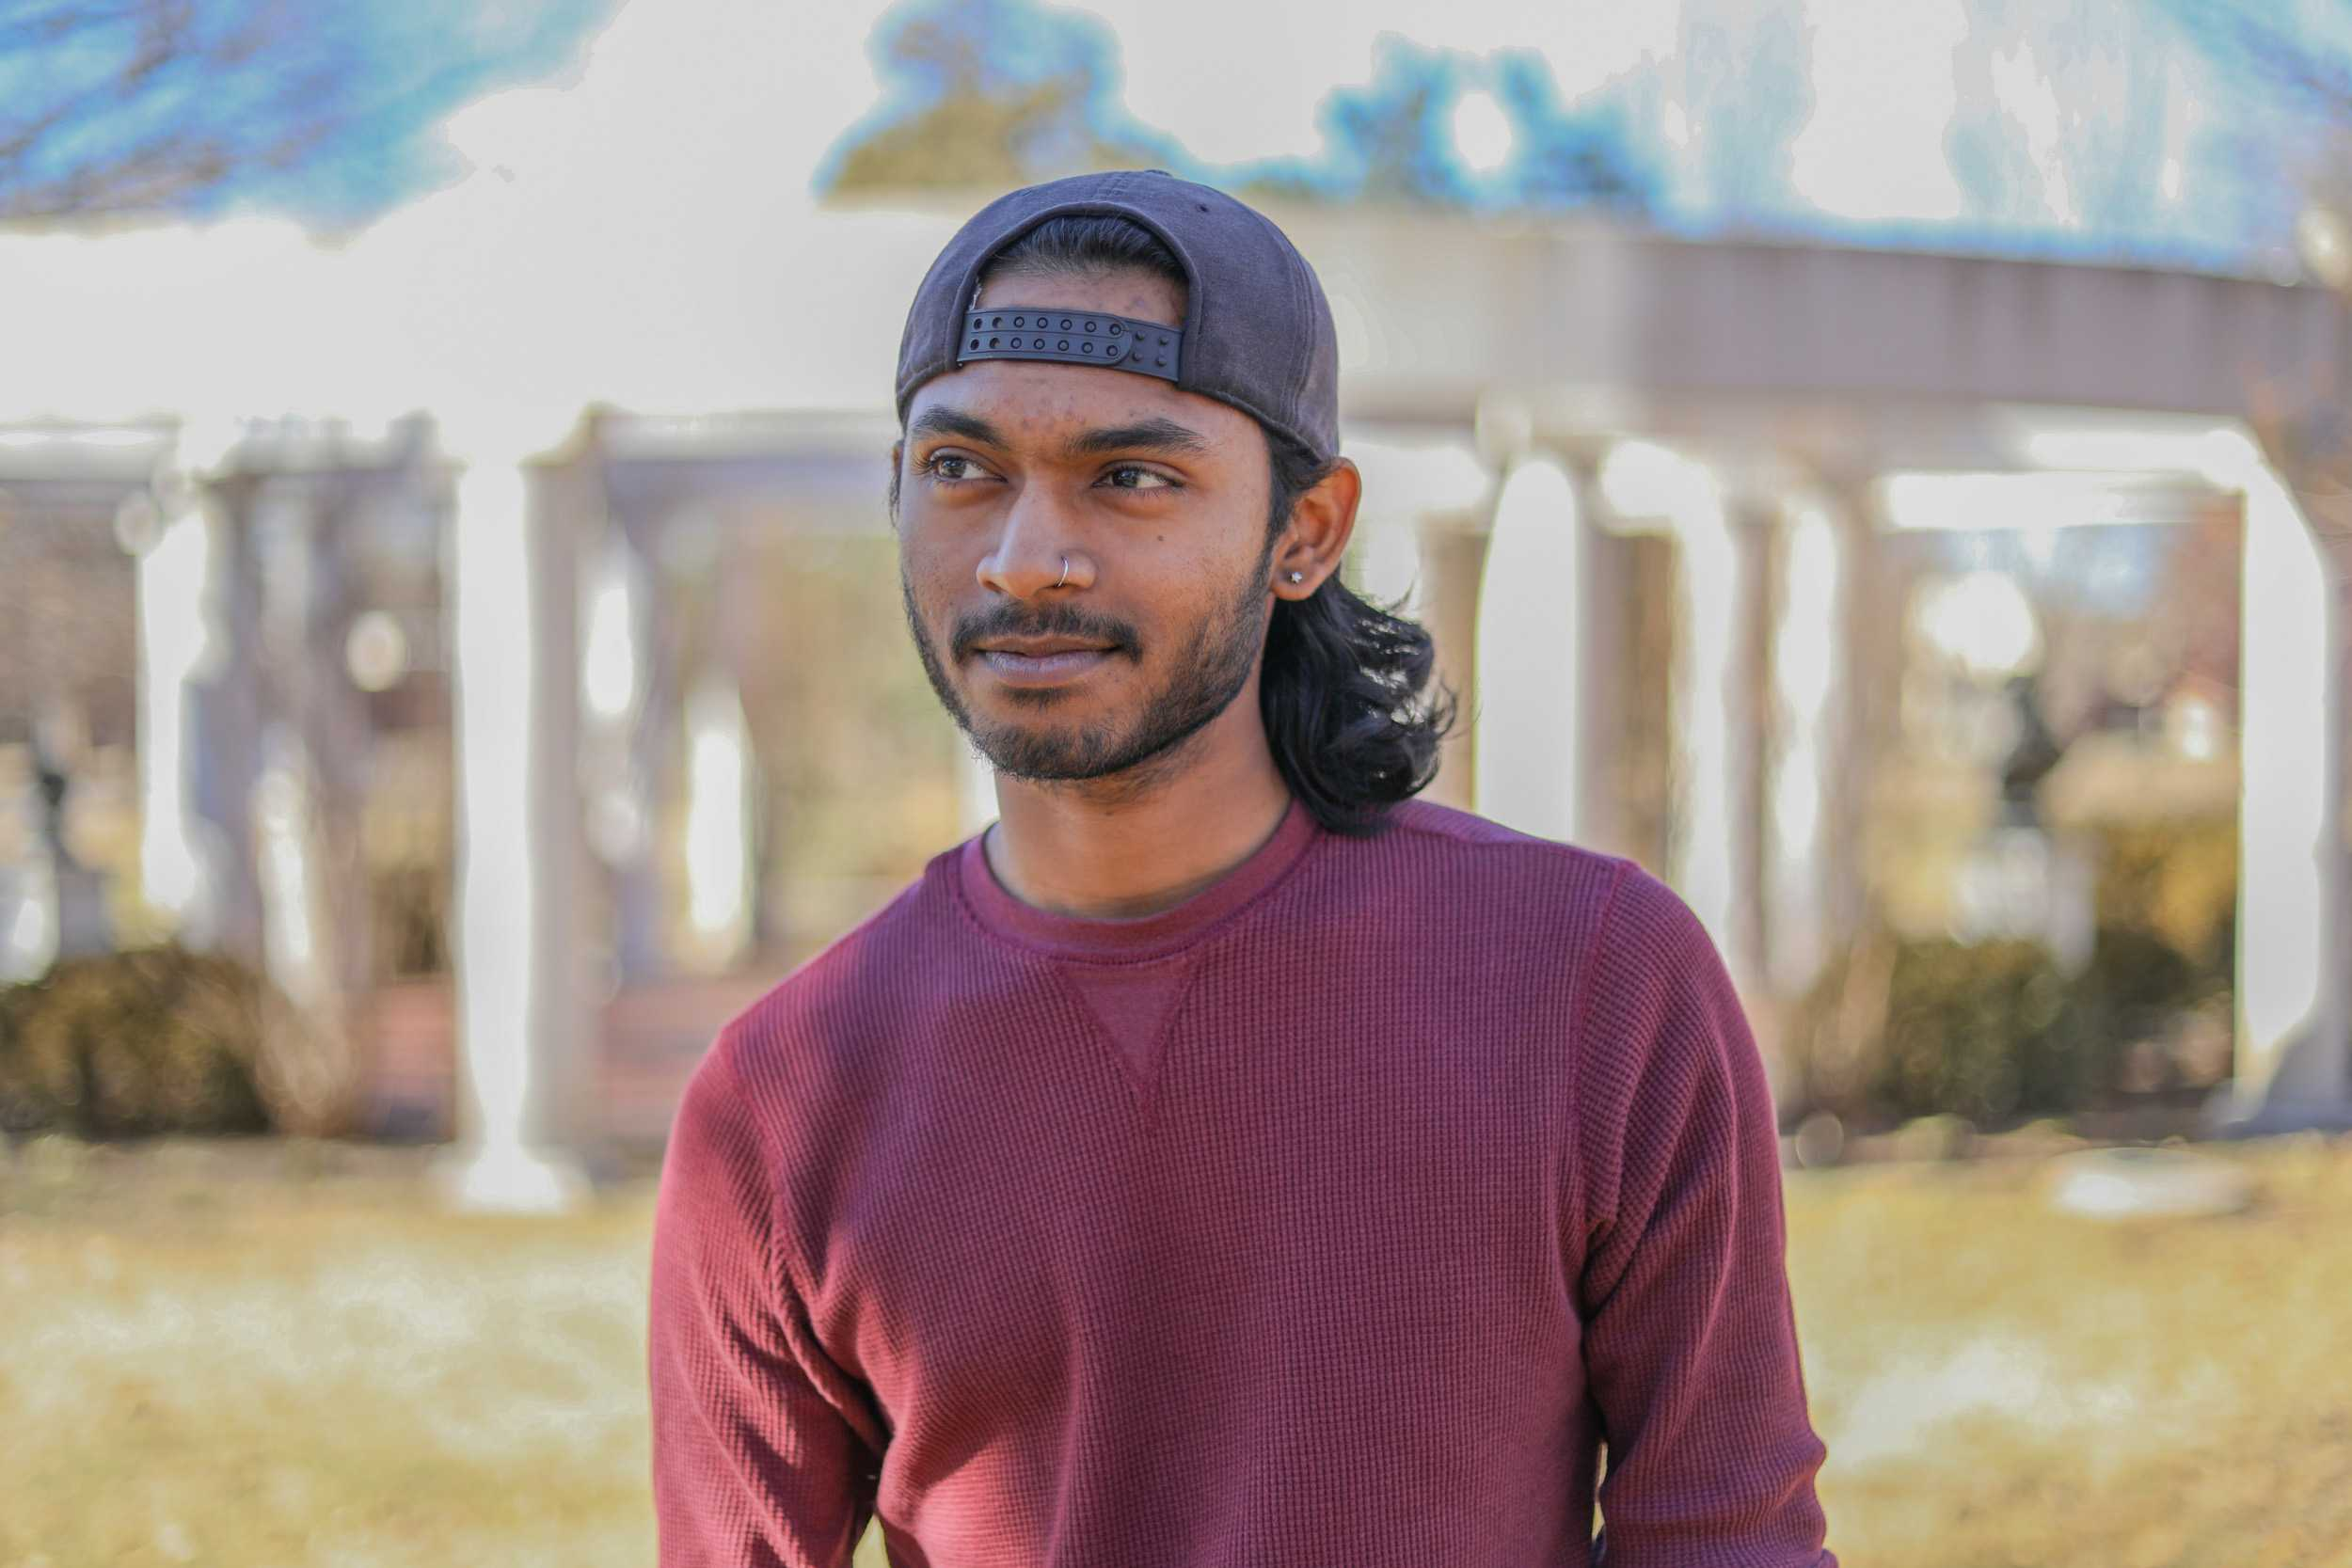 Puvindren Supramaniam applied five times for a license to bring TED Talks to campus.